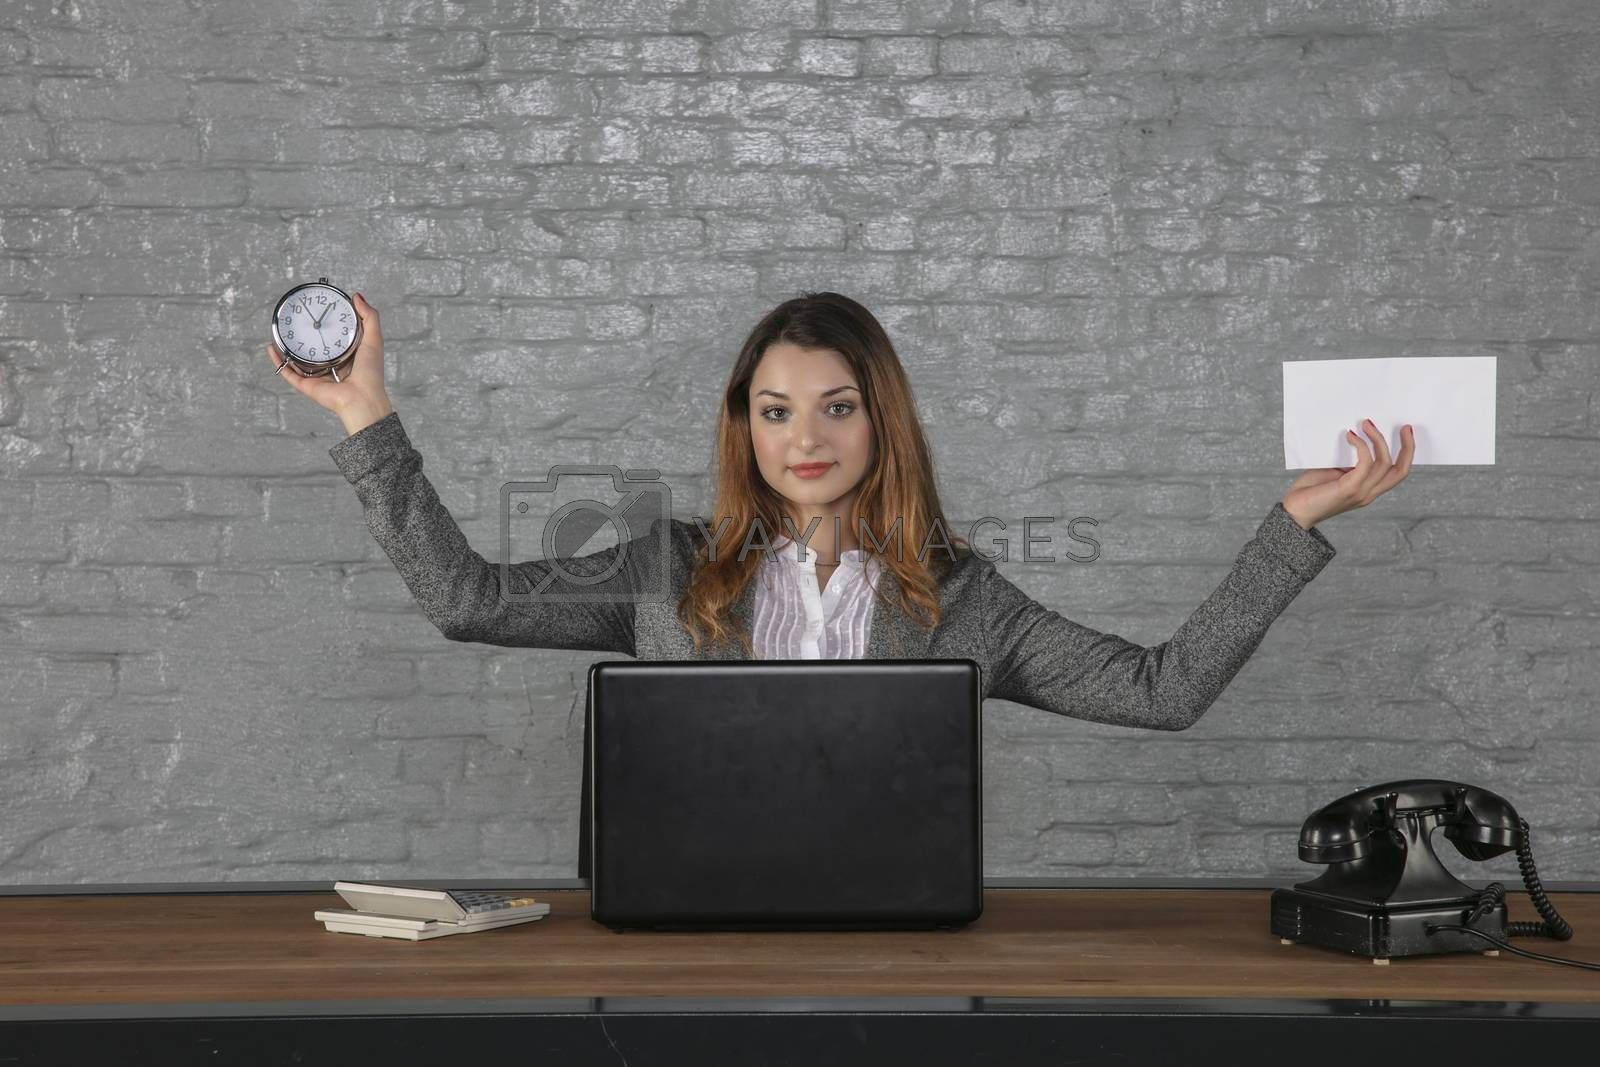 A young business woman holds an envelope and a watch in her hands